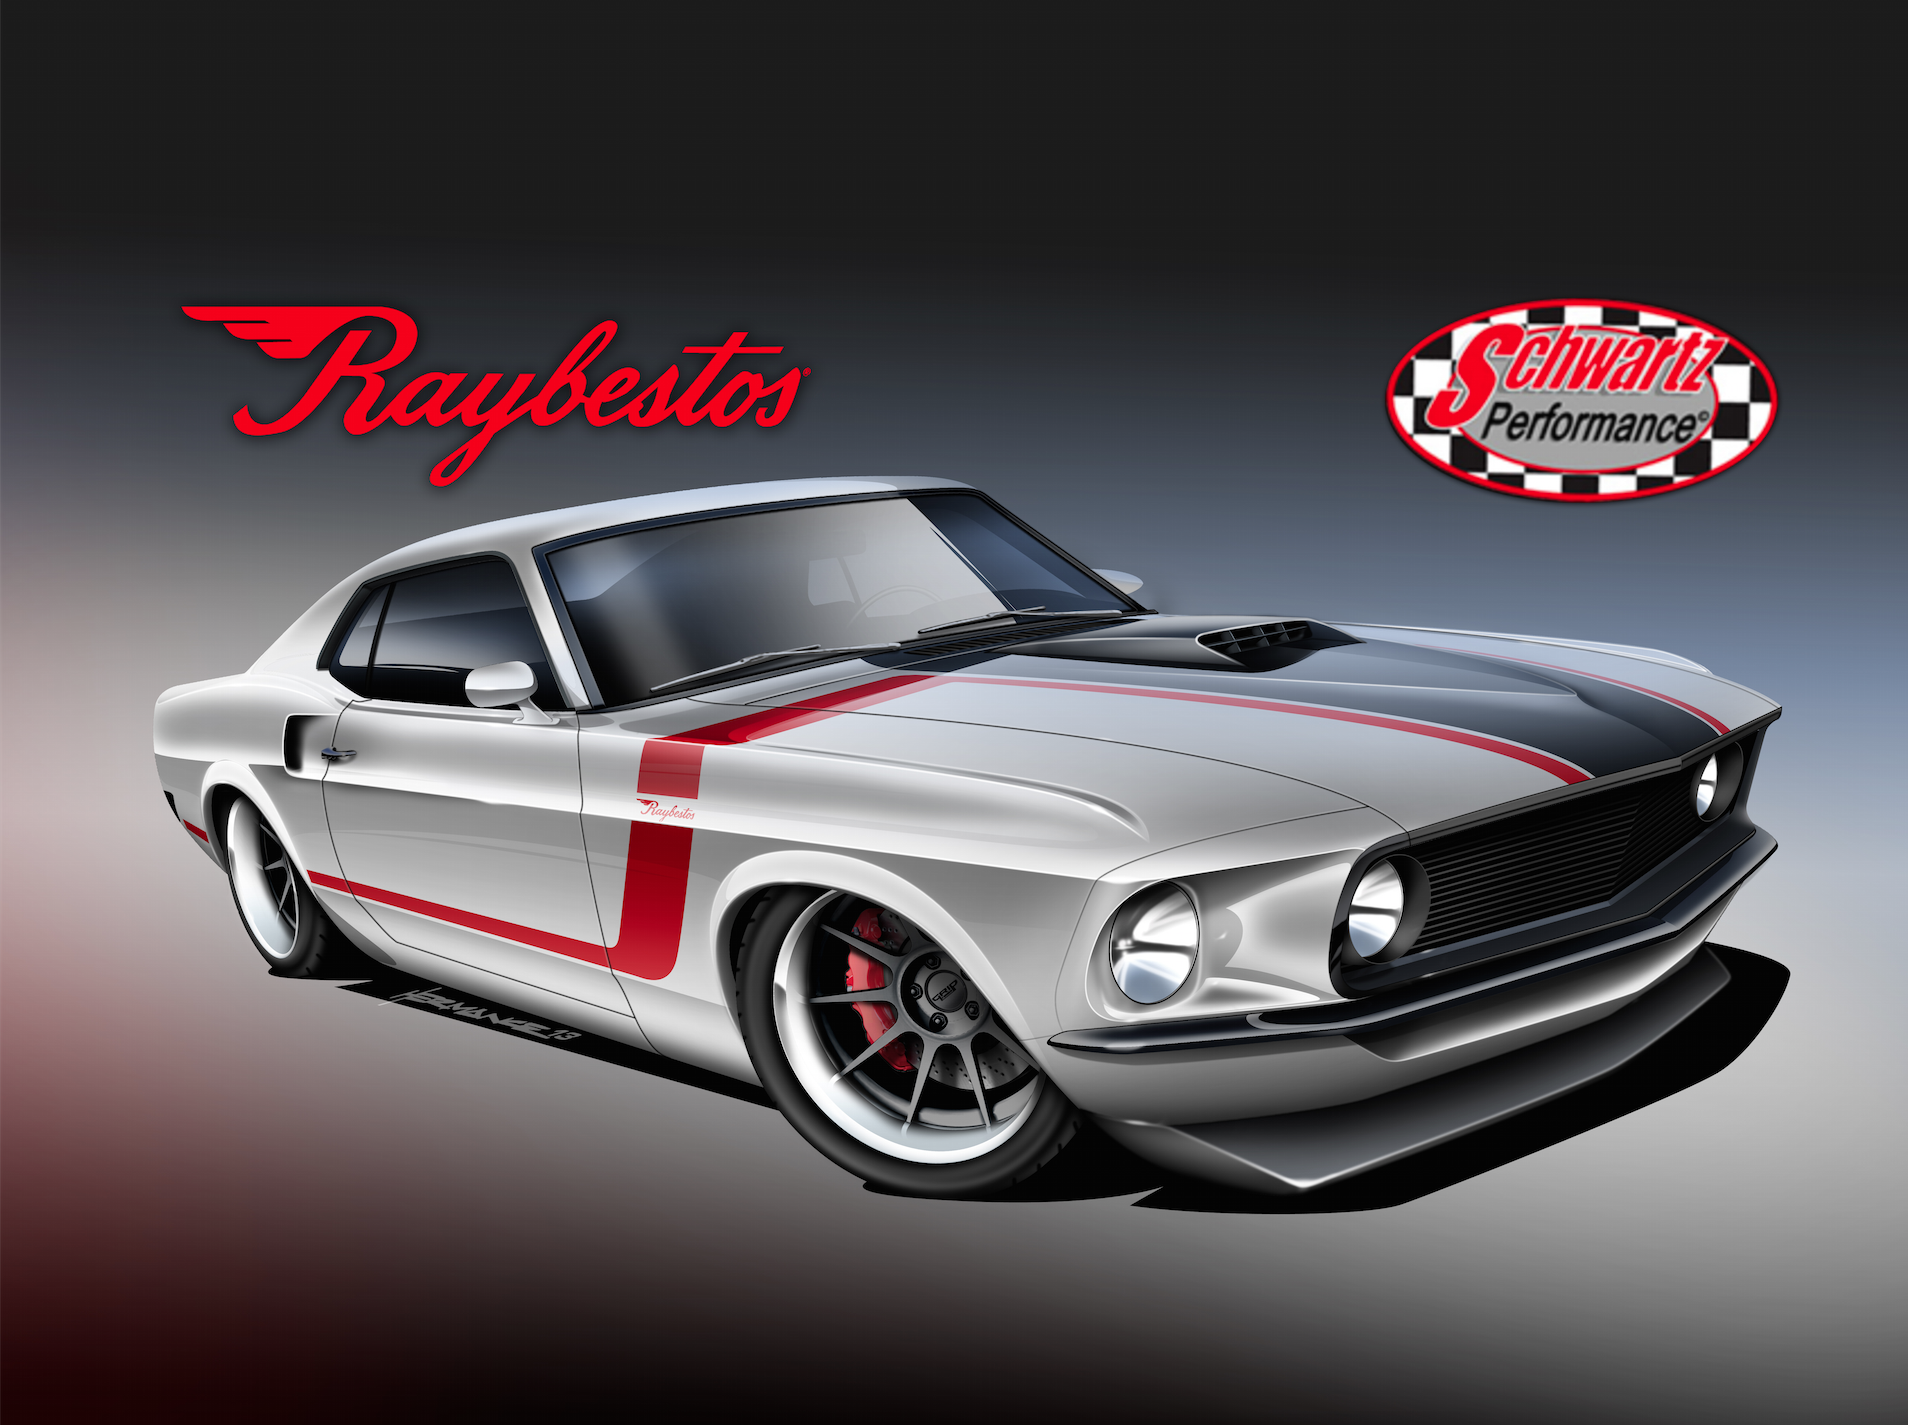 PhotoofRaybestos1969FordMustangFastbackcourtesyofMaximumMarketingServices.png